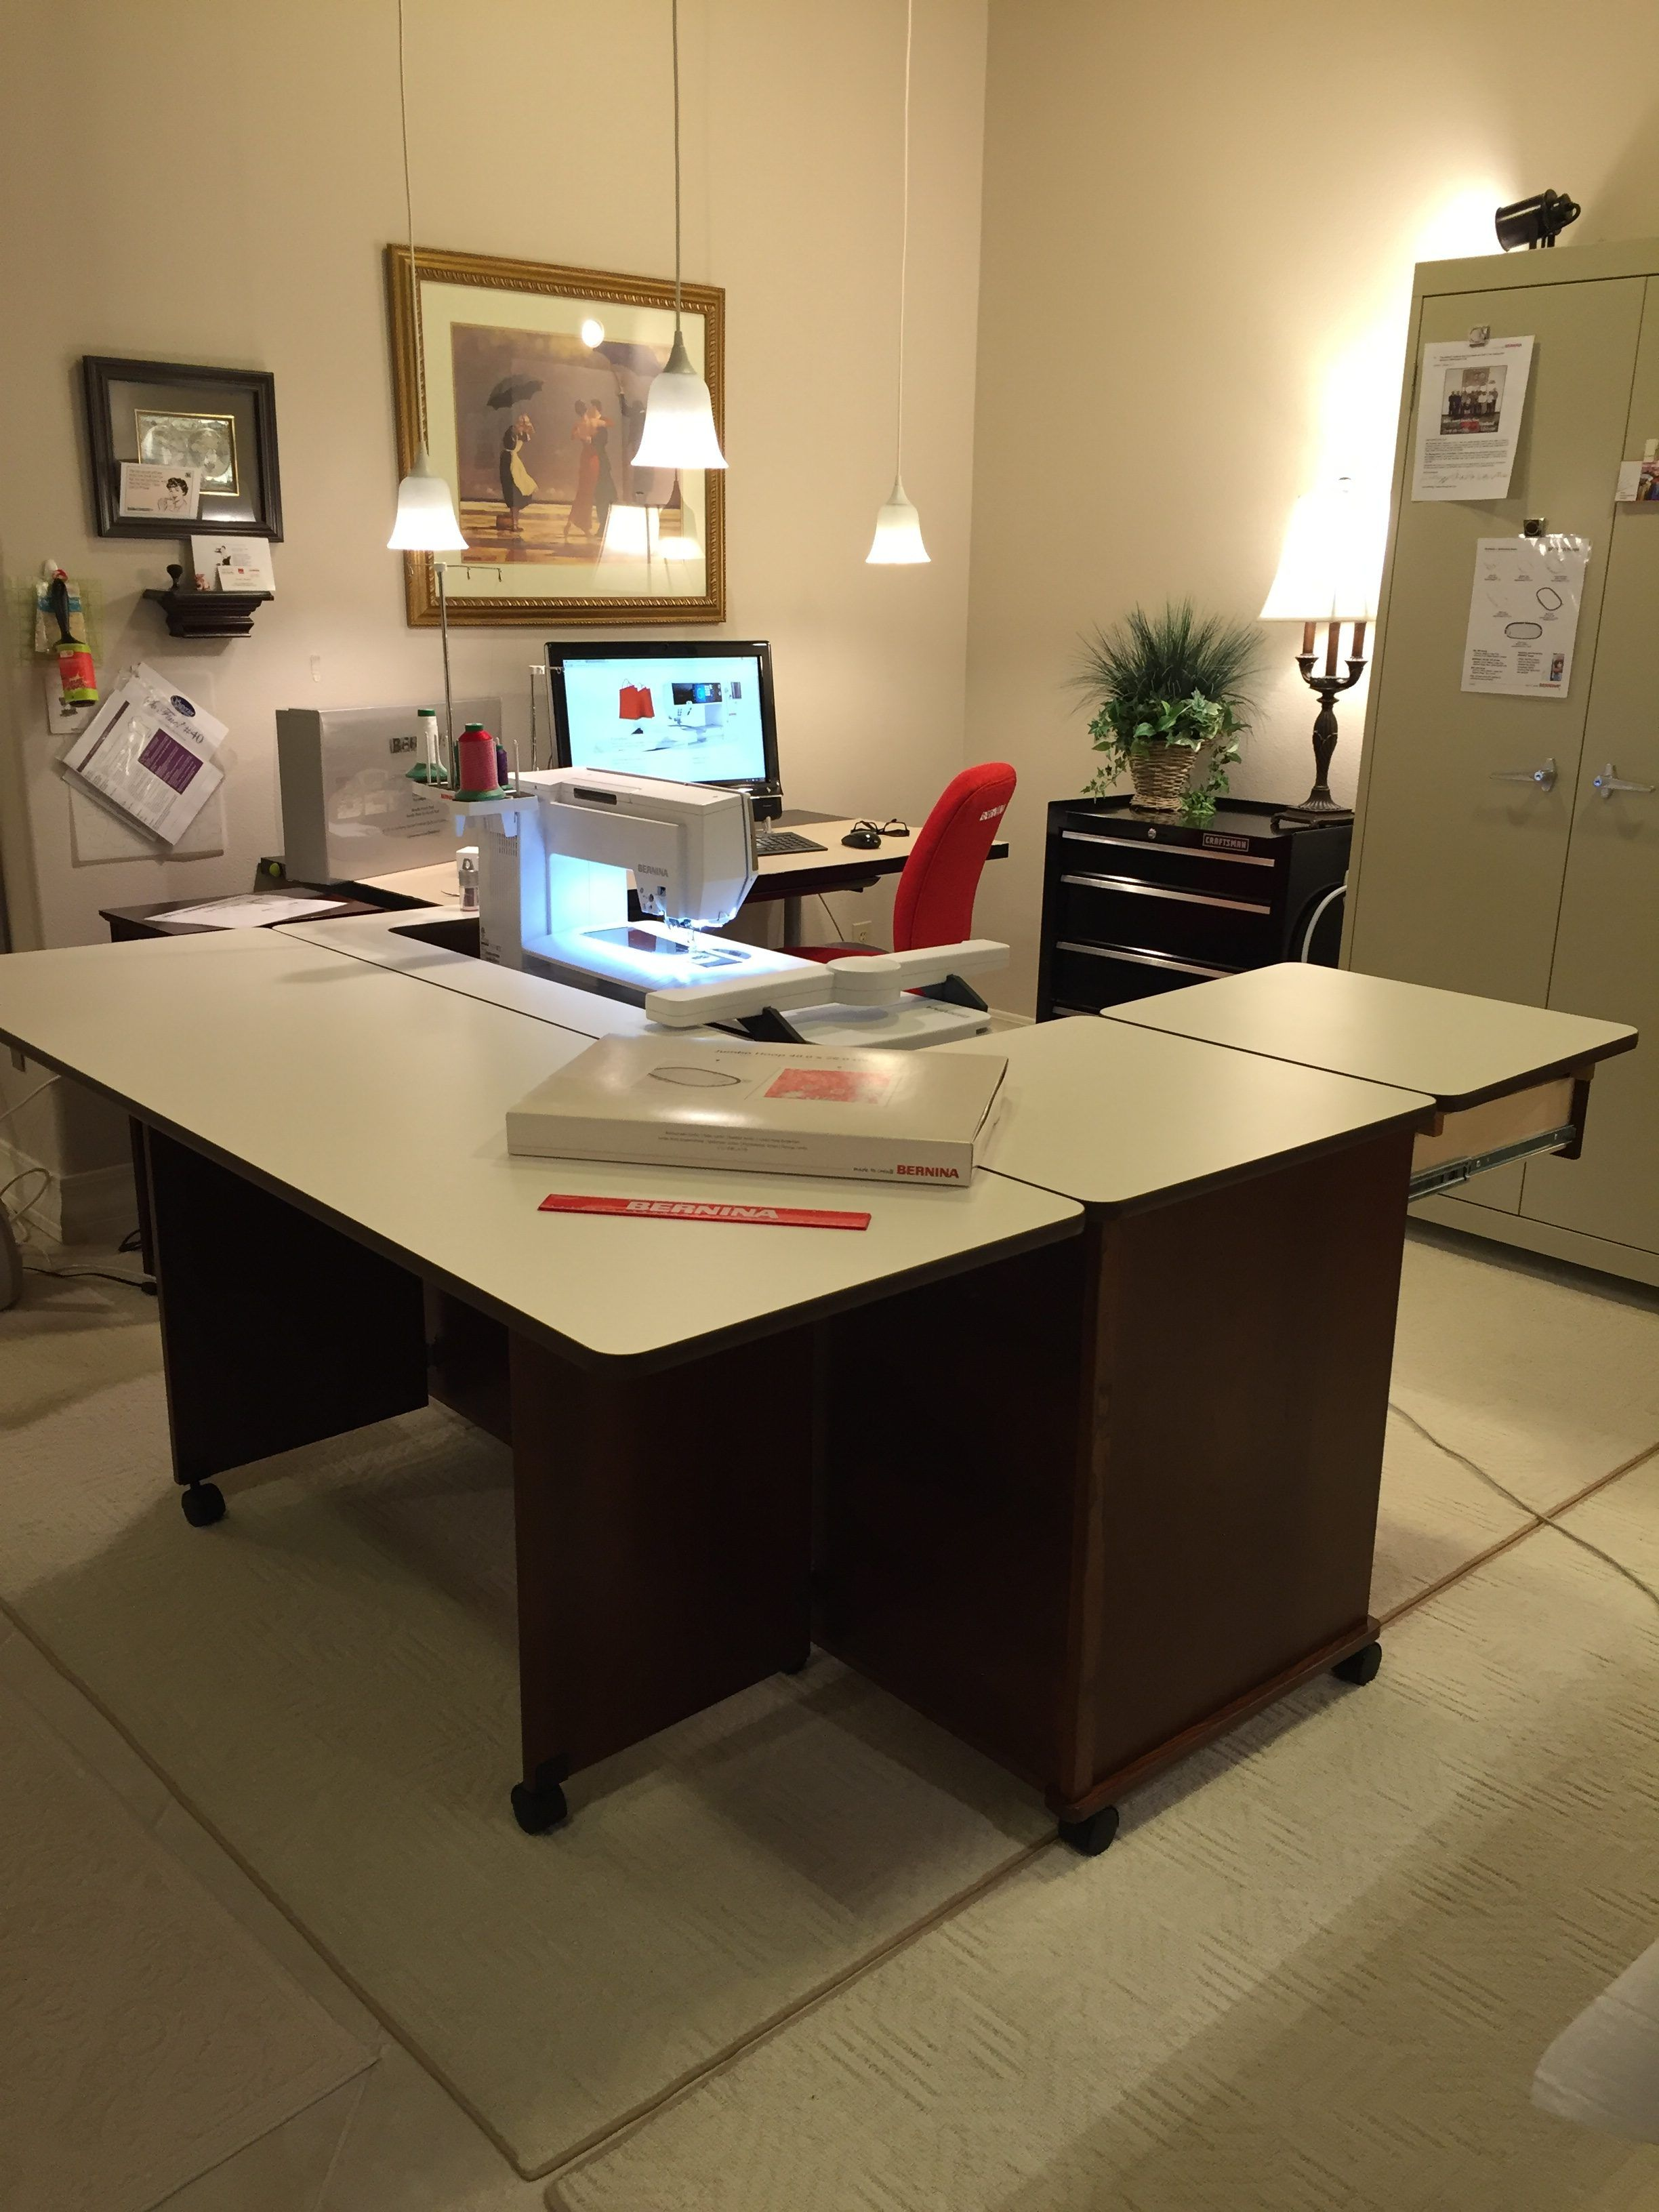 Designing A Sewing Room: Bernina Rocks! A Sewing Room Should Be A Palace In 2020